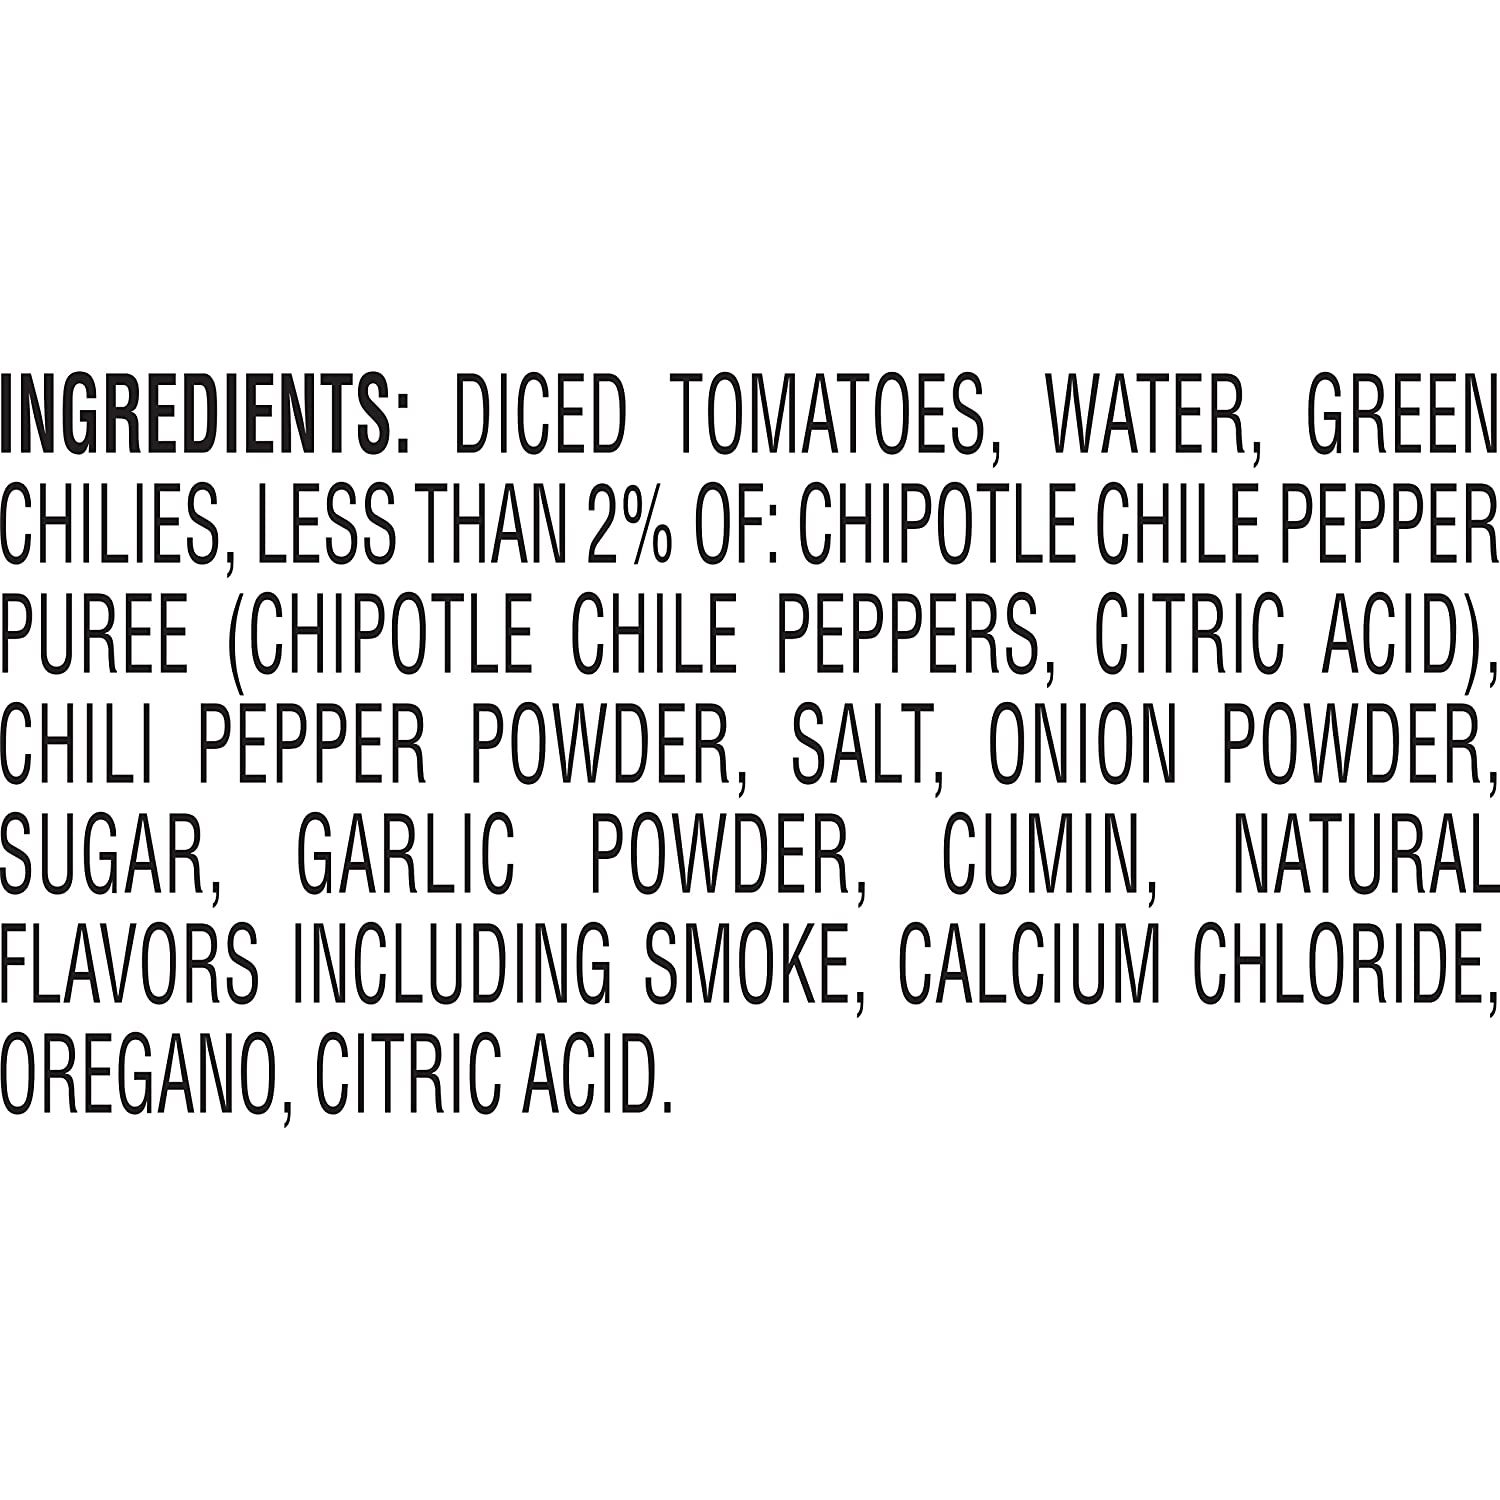 Amazon Com Rotel Chipotle Diced Tomatoes With Green Chilies And